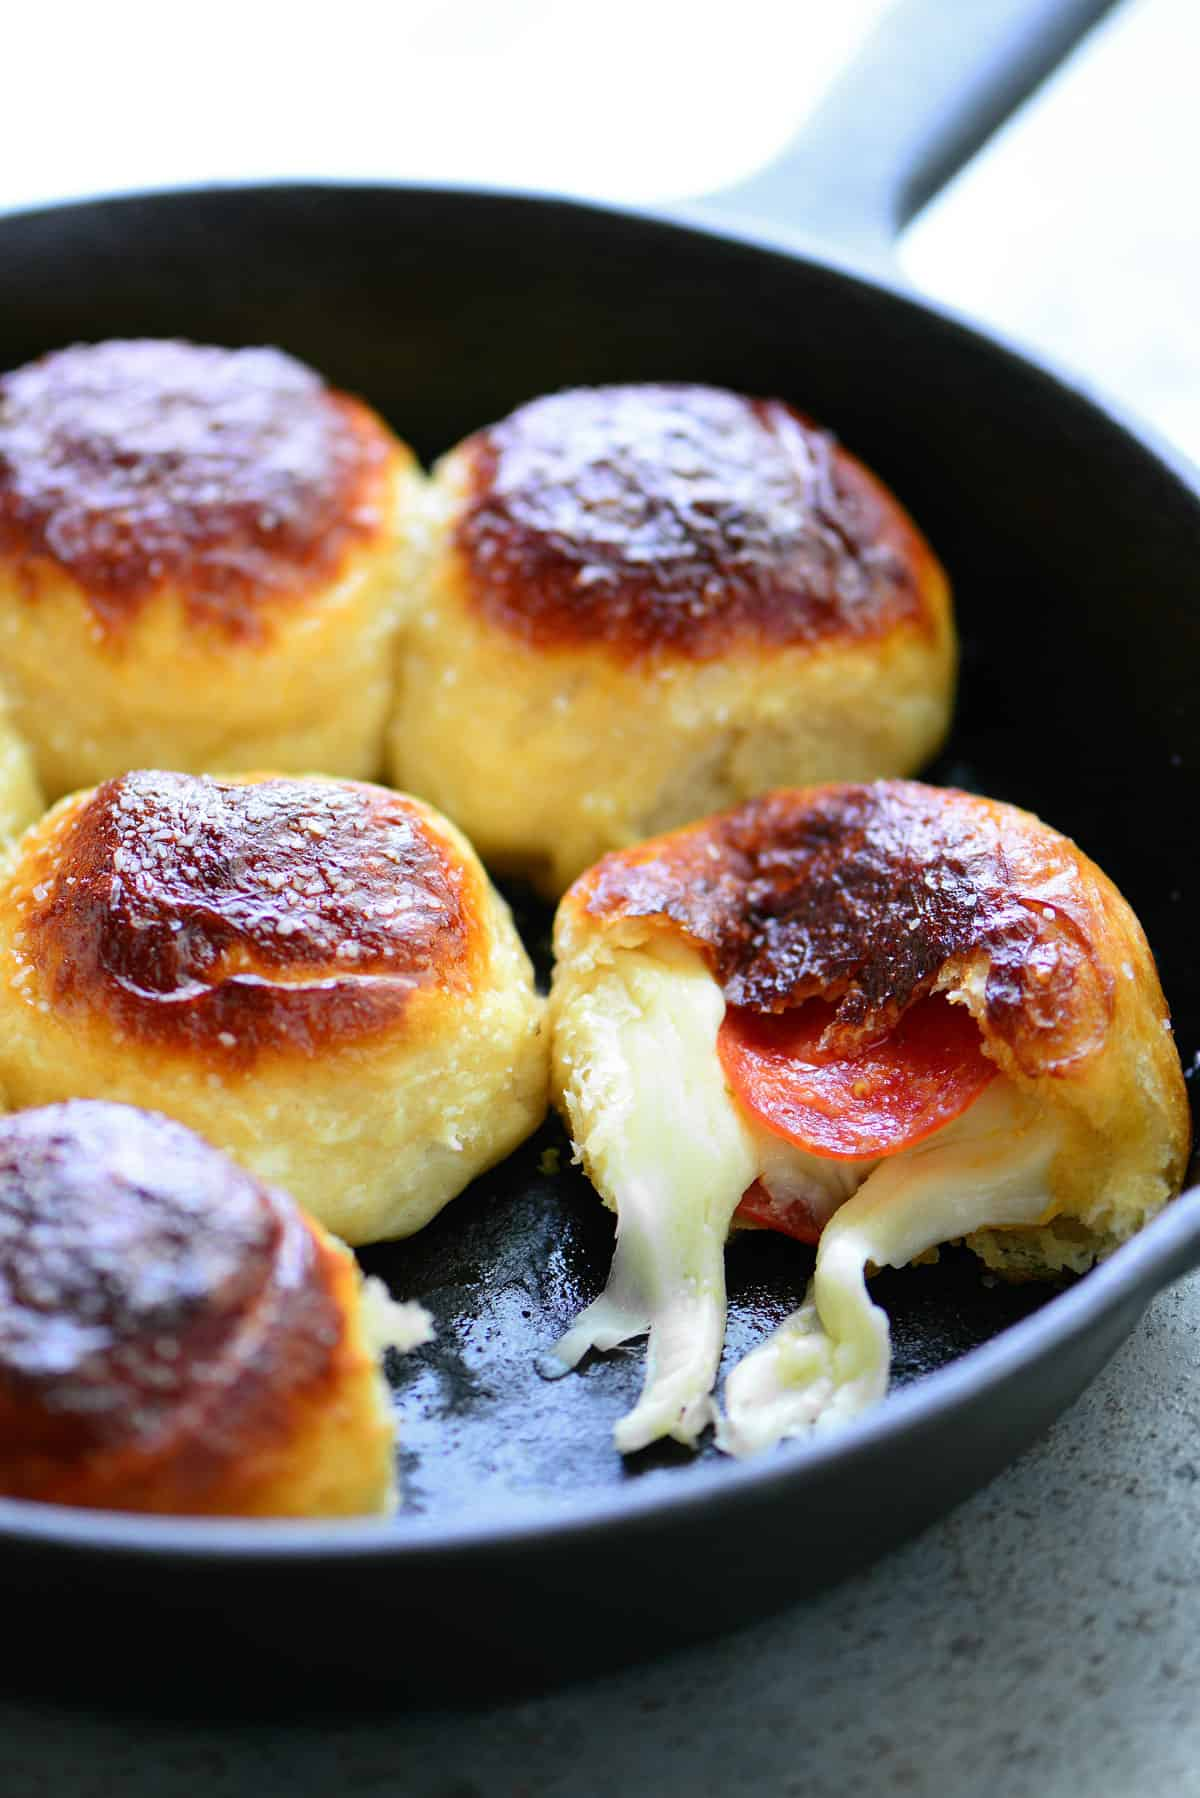 cheese coming out of the dough in a pan